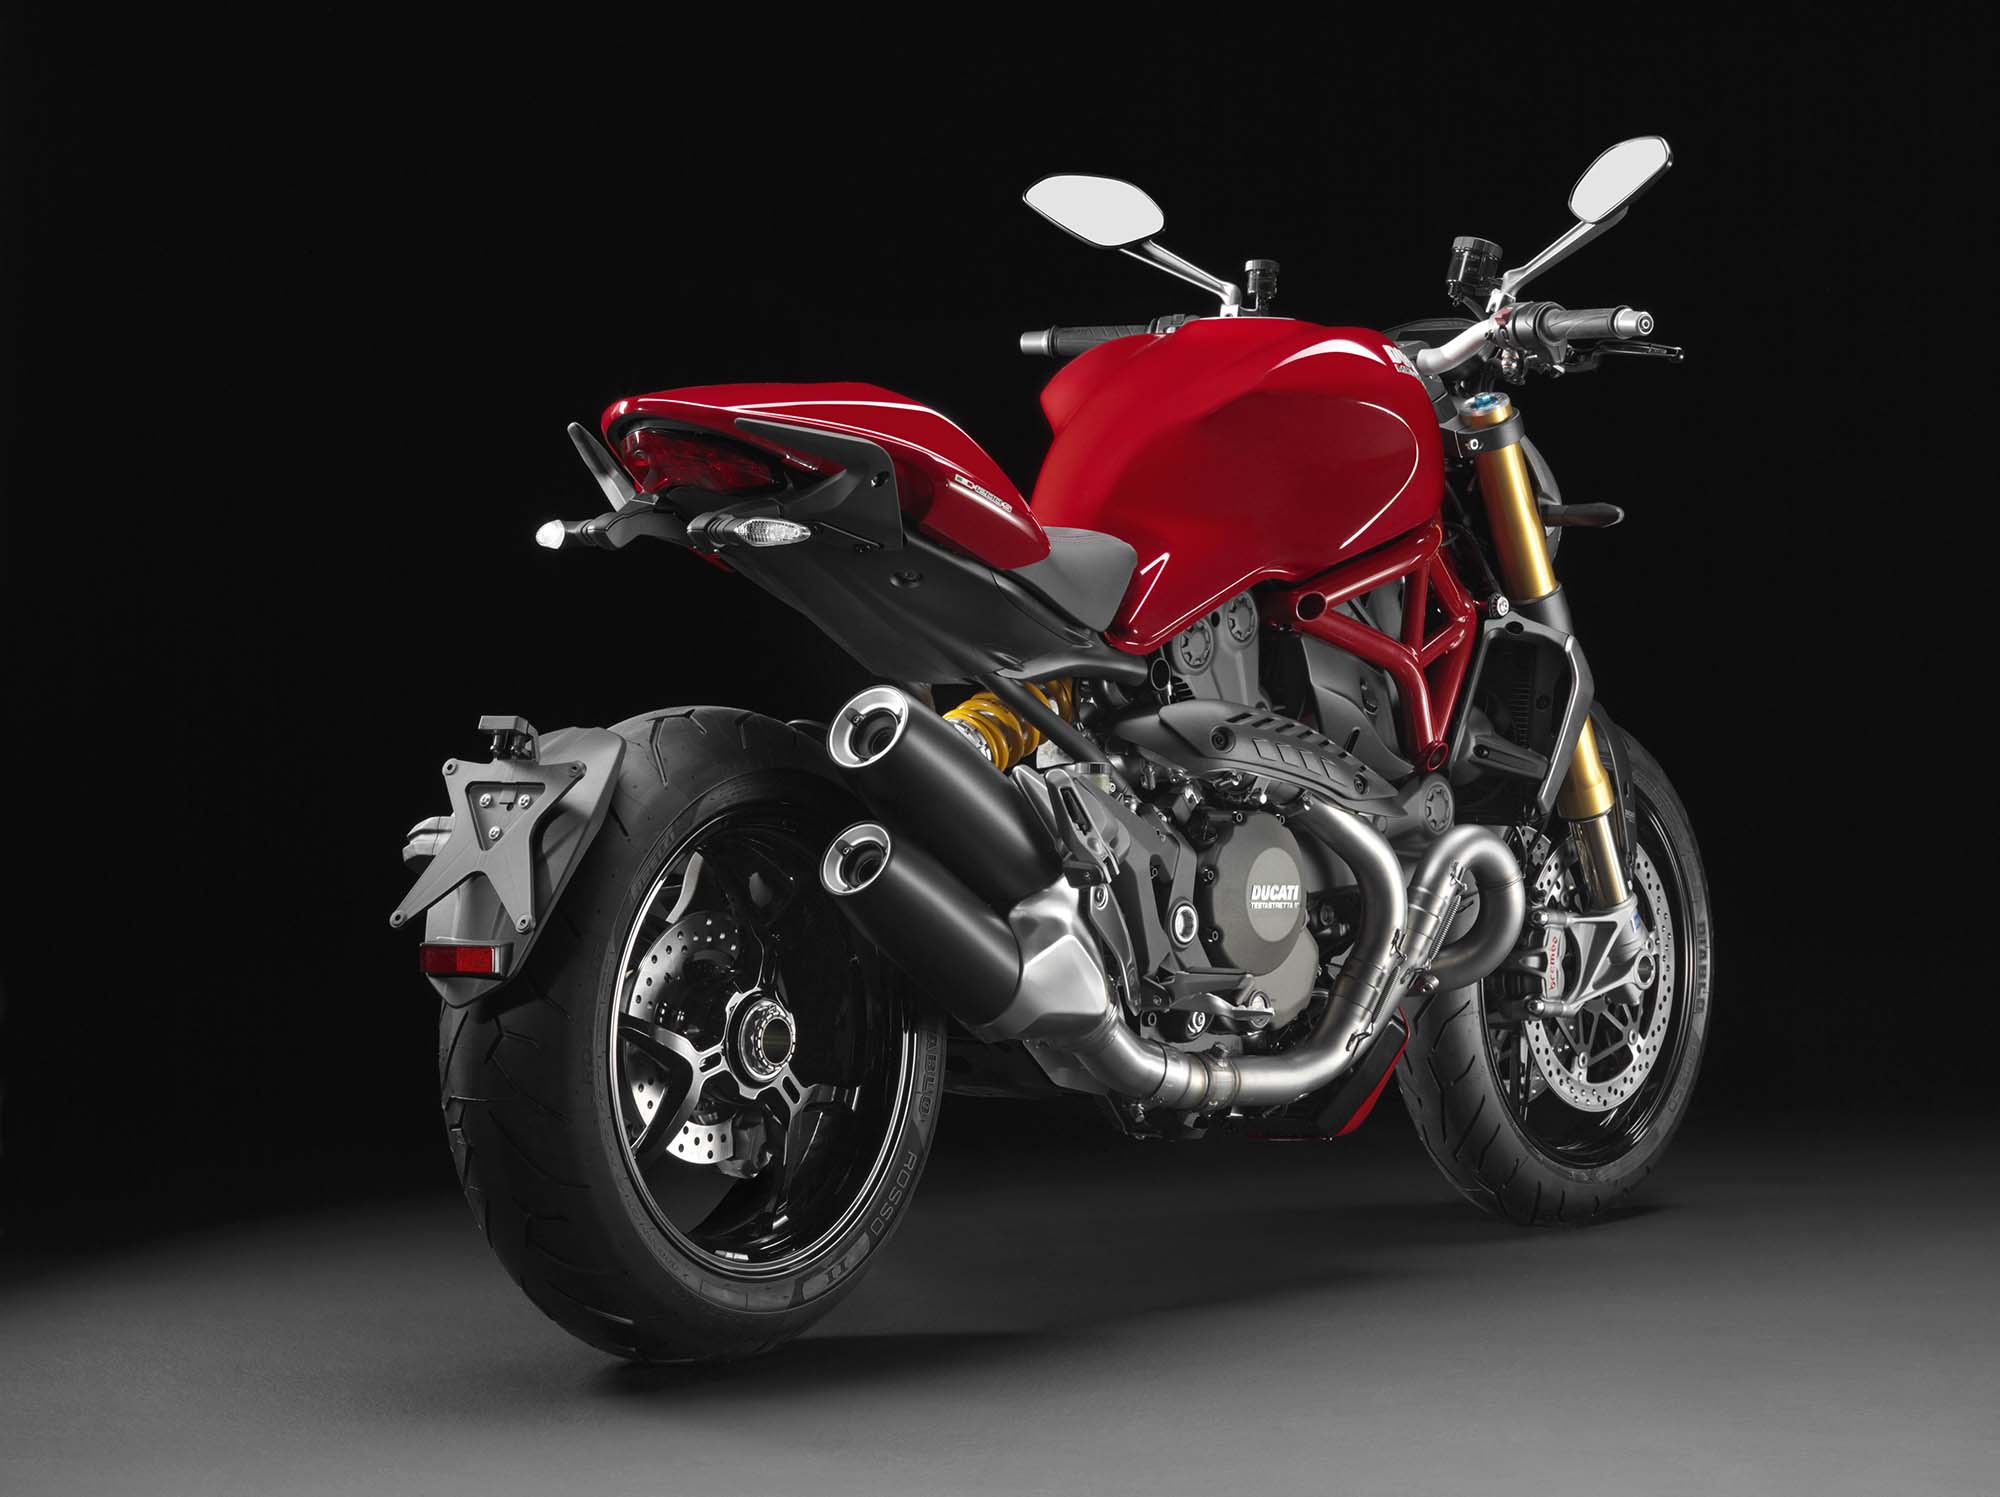 2014 ducati monster 1200 s - moar monster - asphalt & rubber